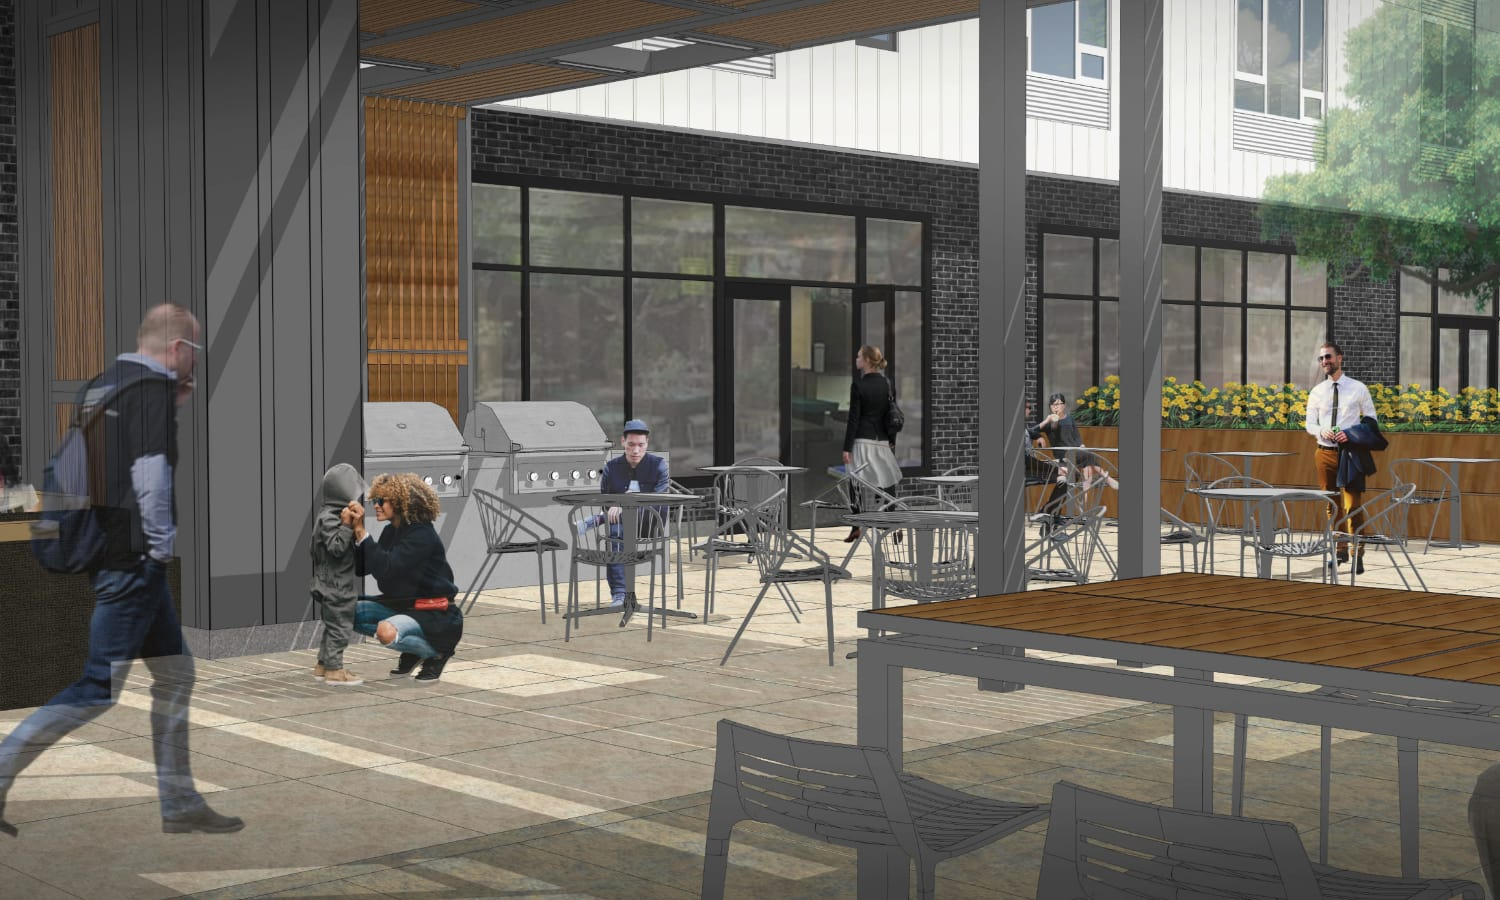 Courtyard view rendering of Grant Park Village - Quimby facing game room in Portland, OR